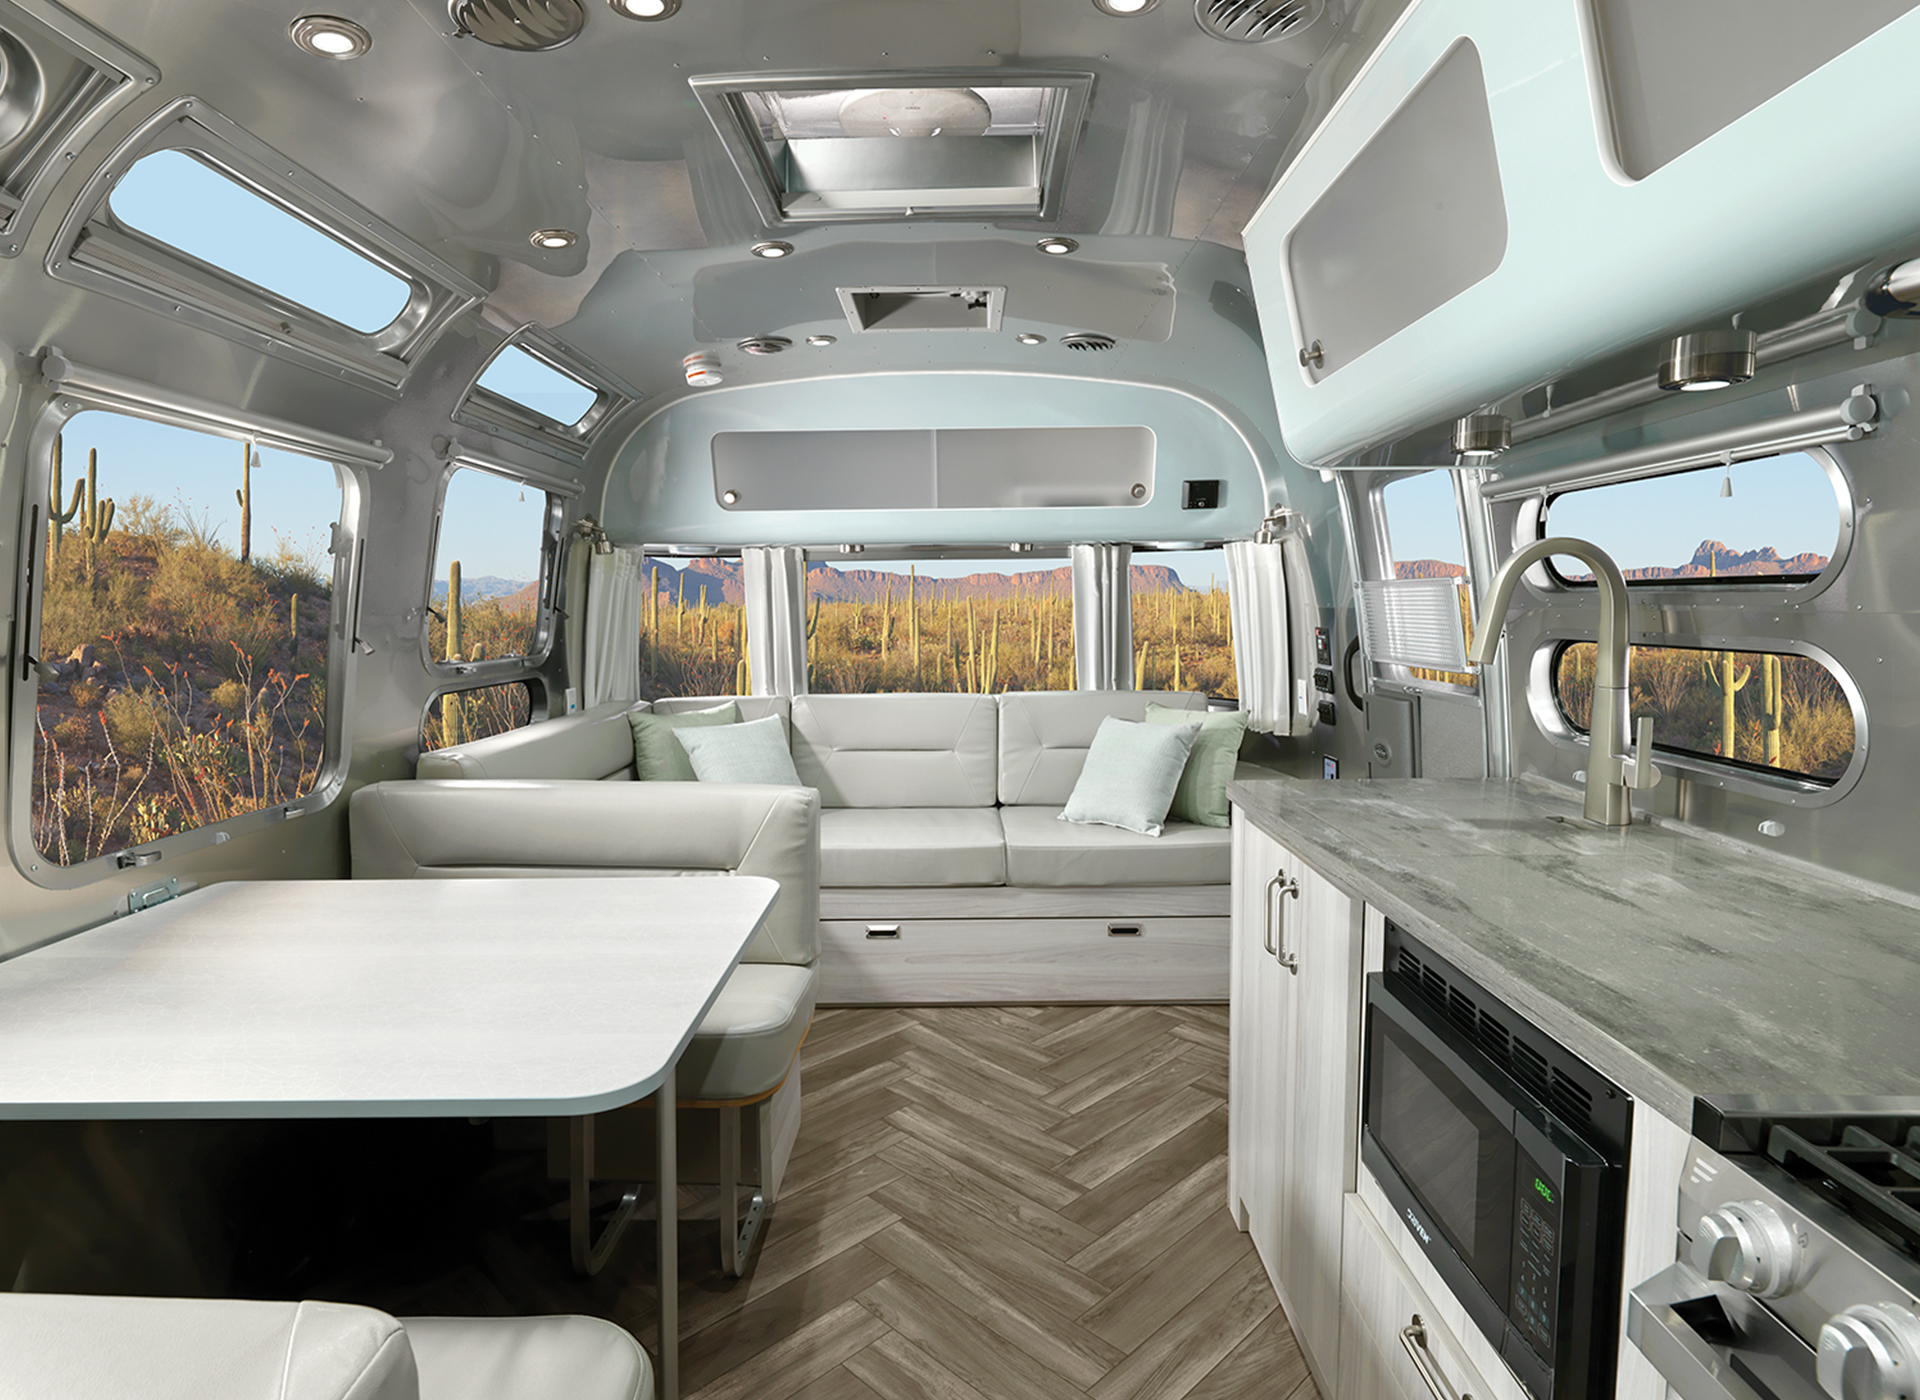 Airstream International 30RB Interior Back to Front Seashell Decor